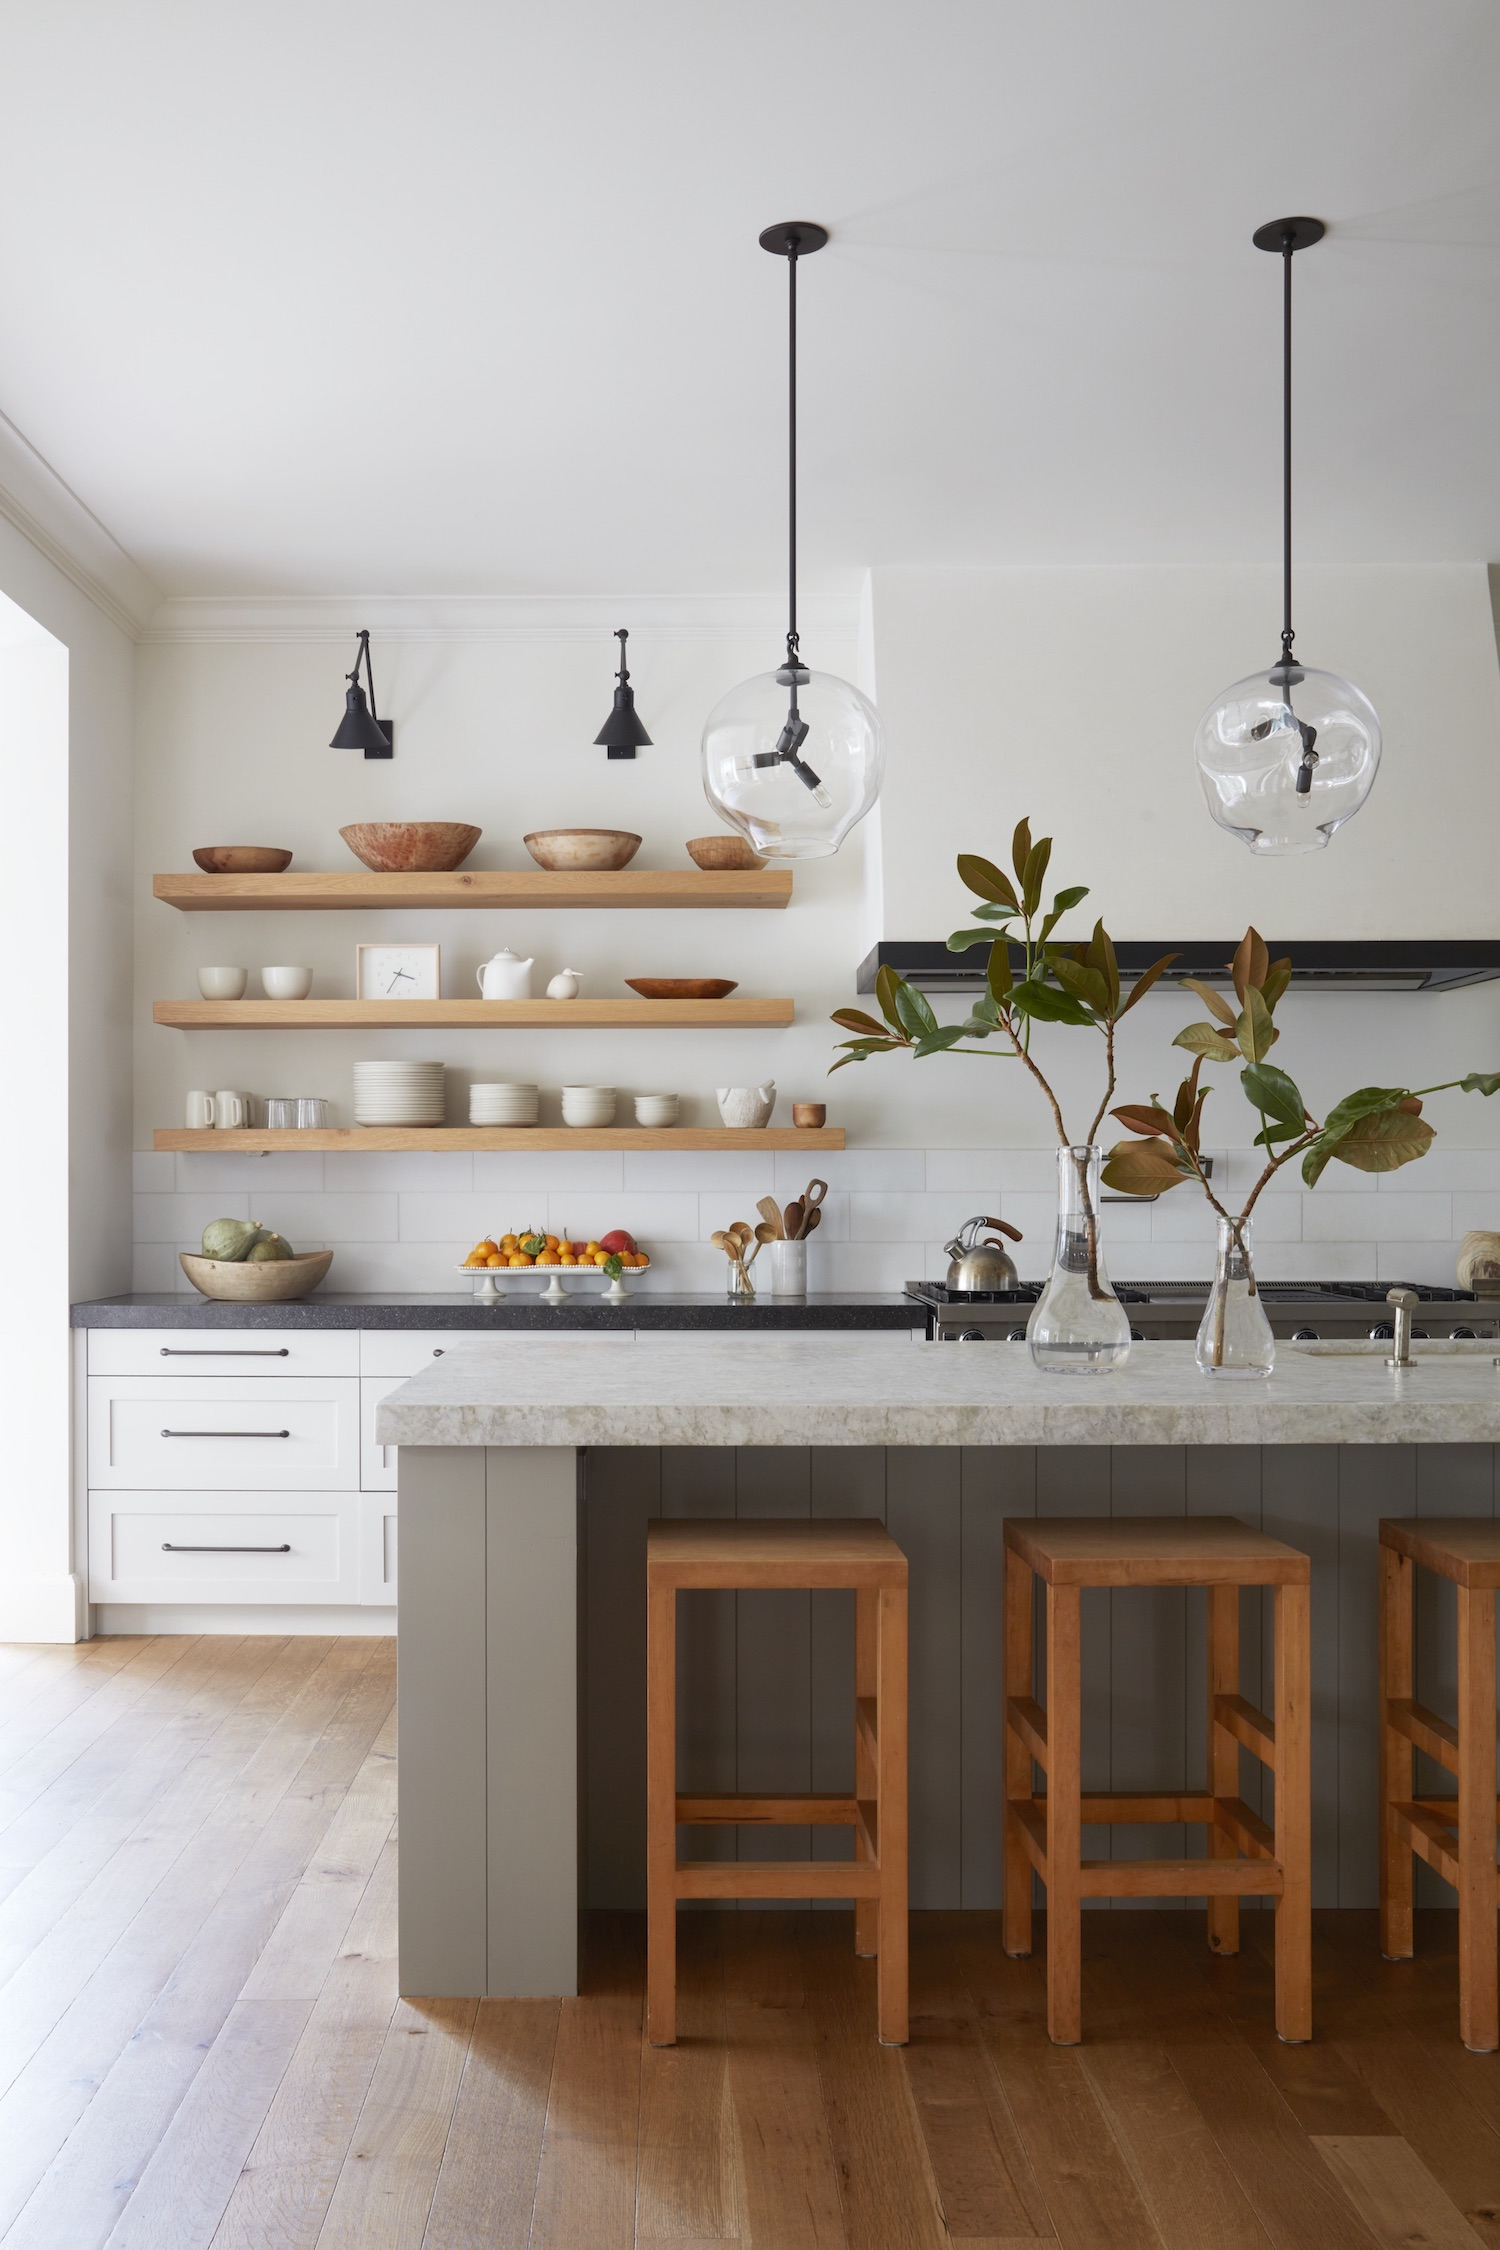 The Search Is Over — Here, 6 Kitchen Pendant Light Ideas to Complete You (And Your Space)